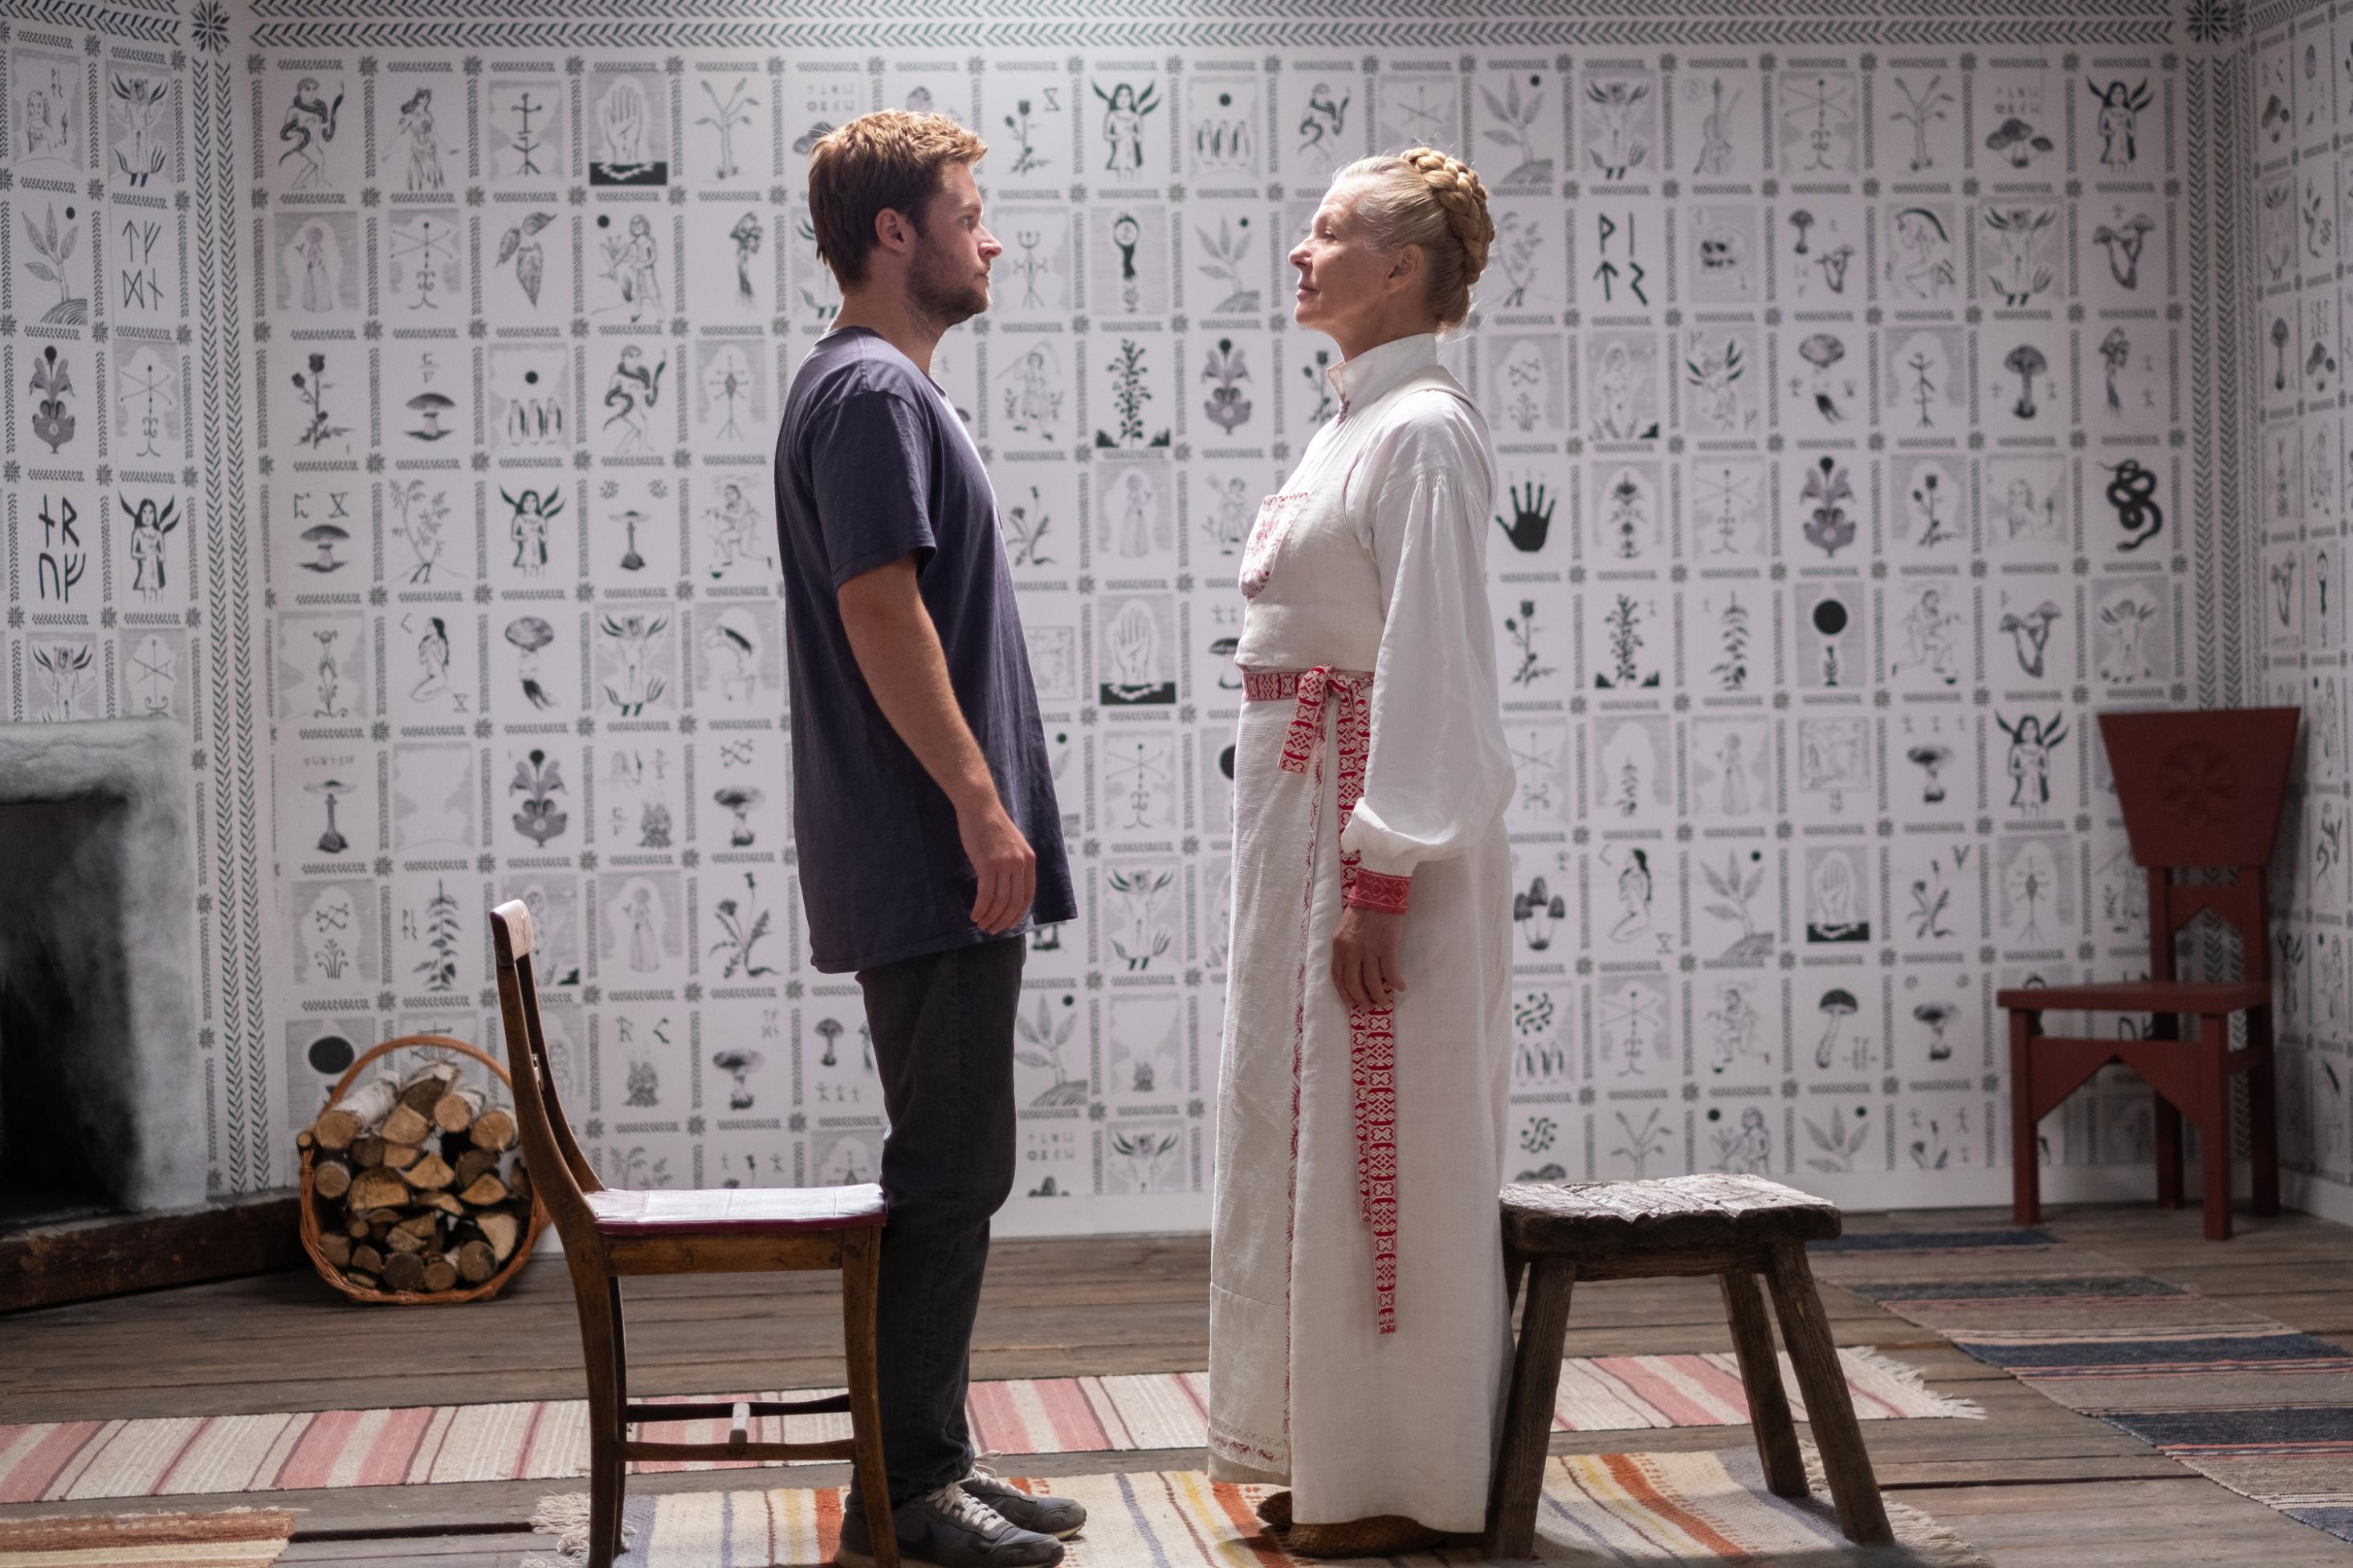 Ari Aster's 'Midsommar' drags pagan folk horror into 21st